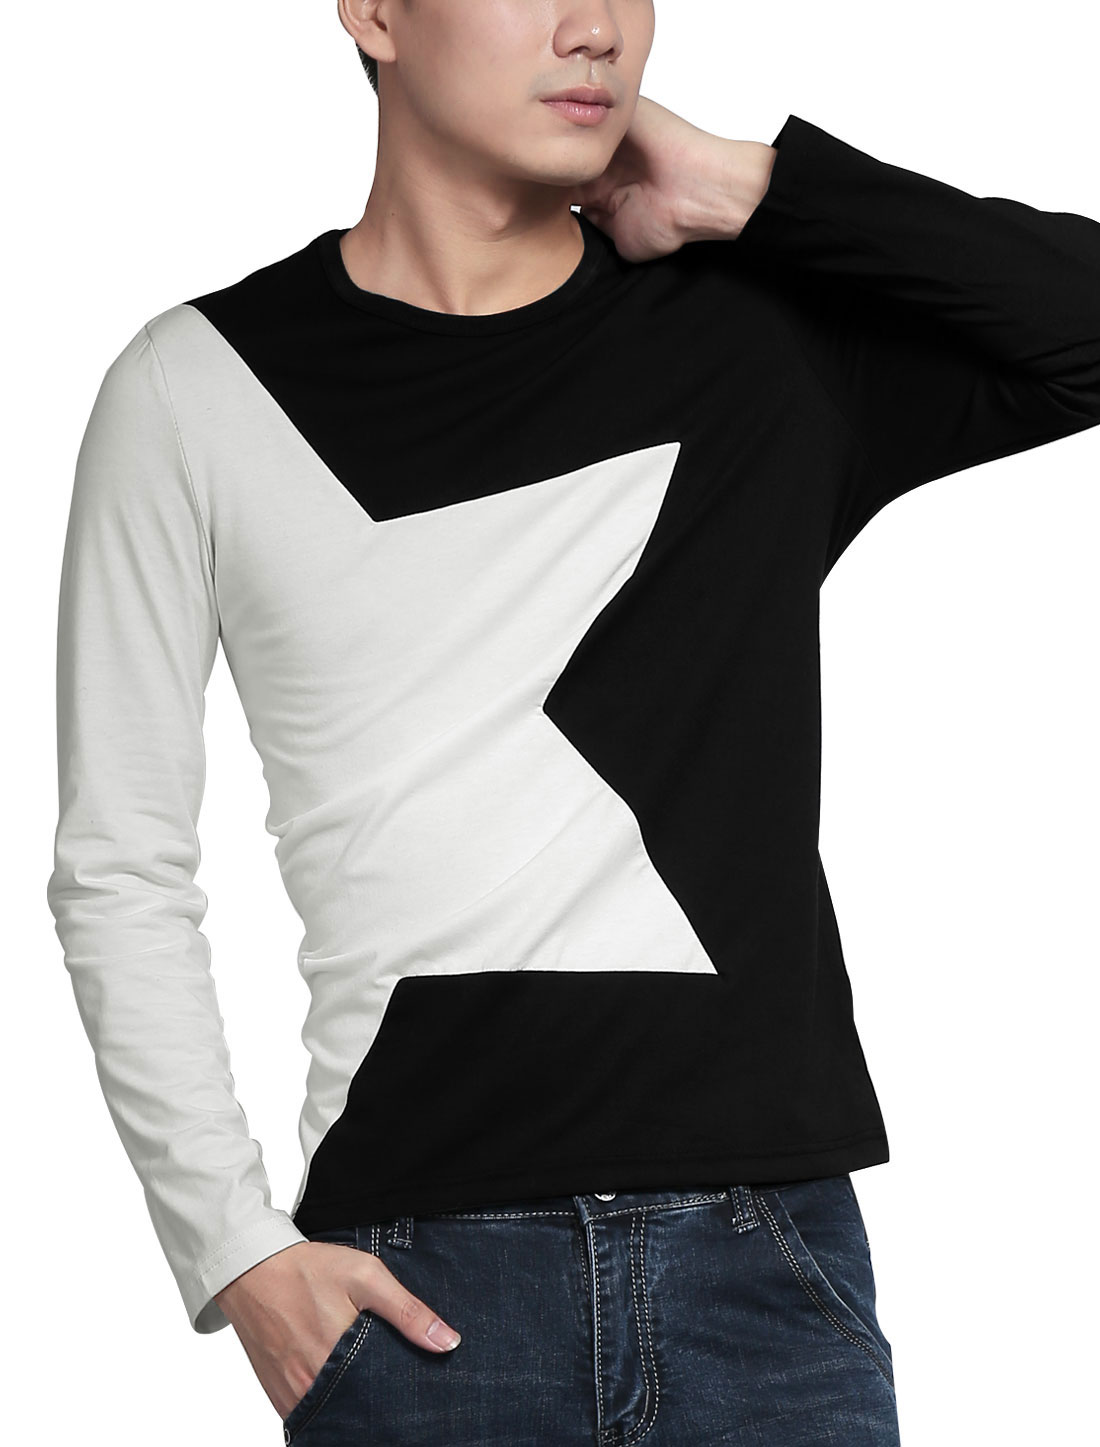 Men Autumn Fashion Two Tone Contrast Color Shirt Black White L